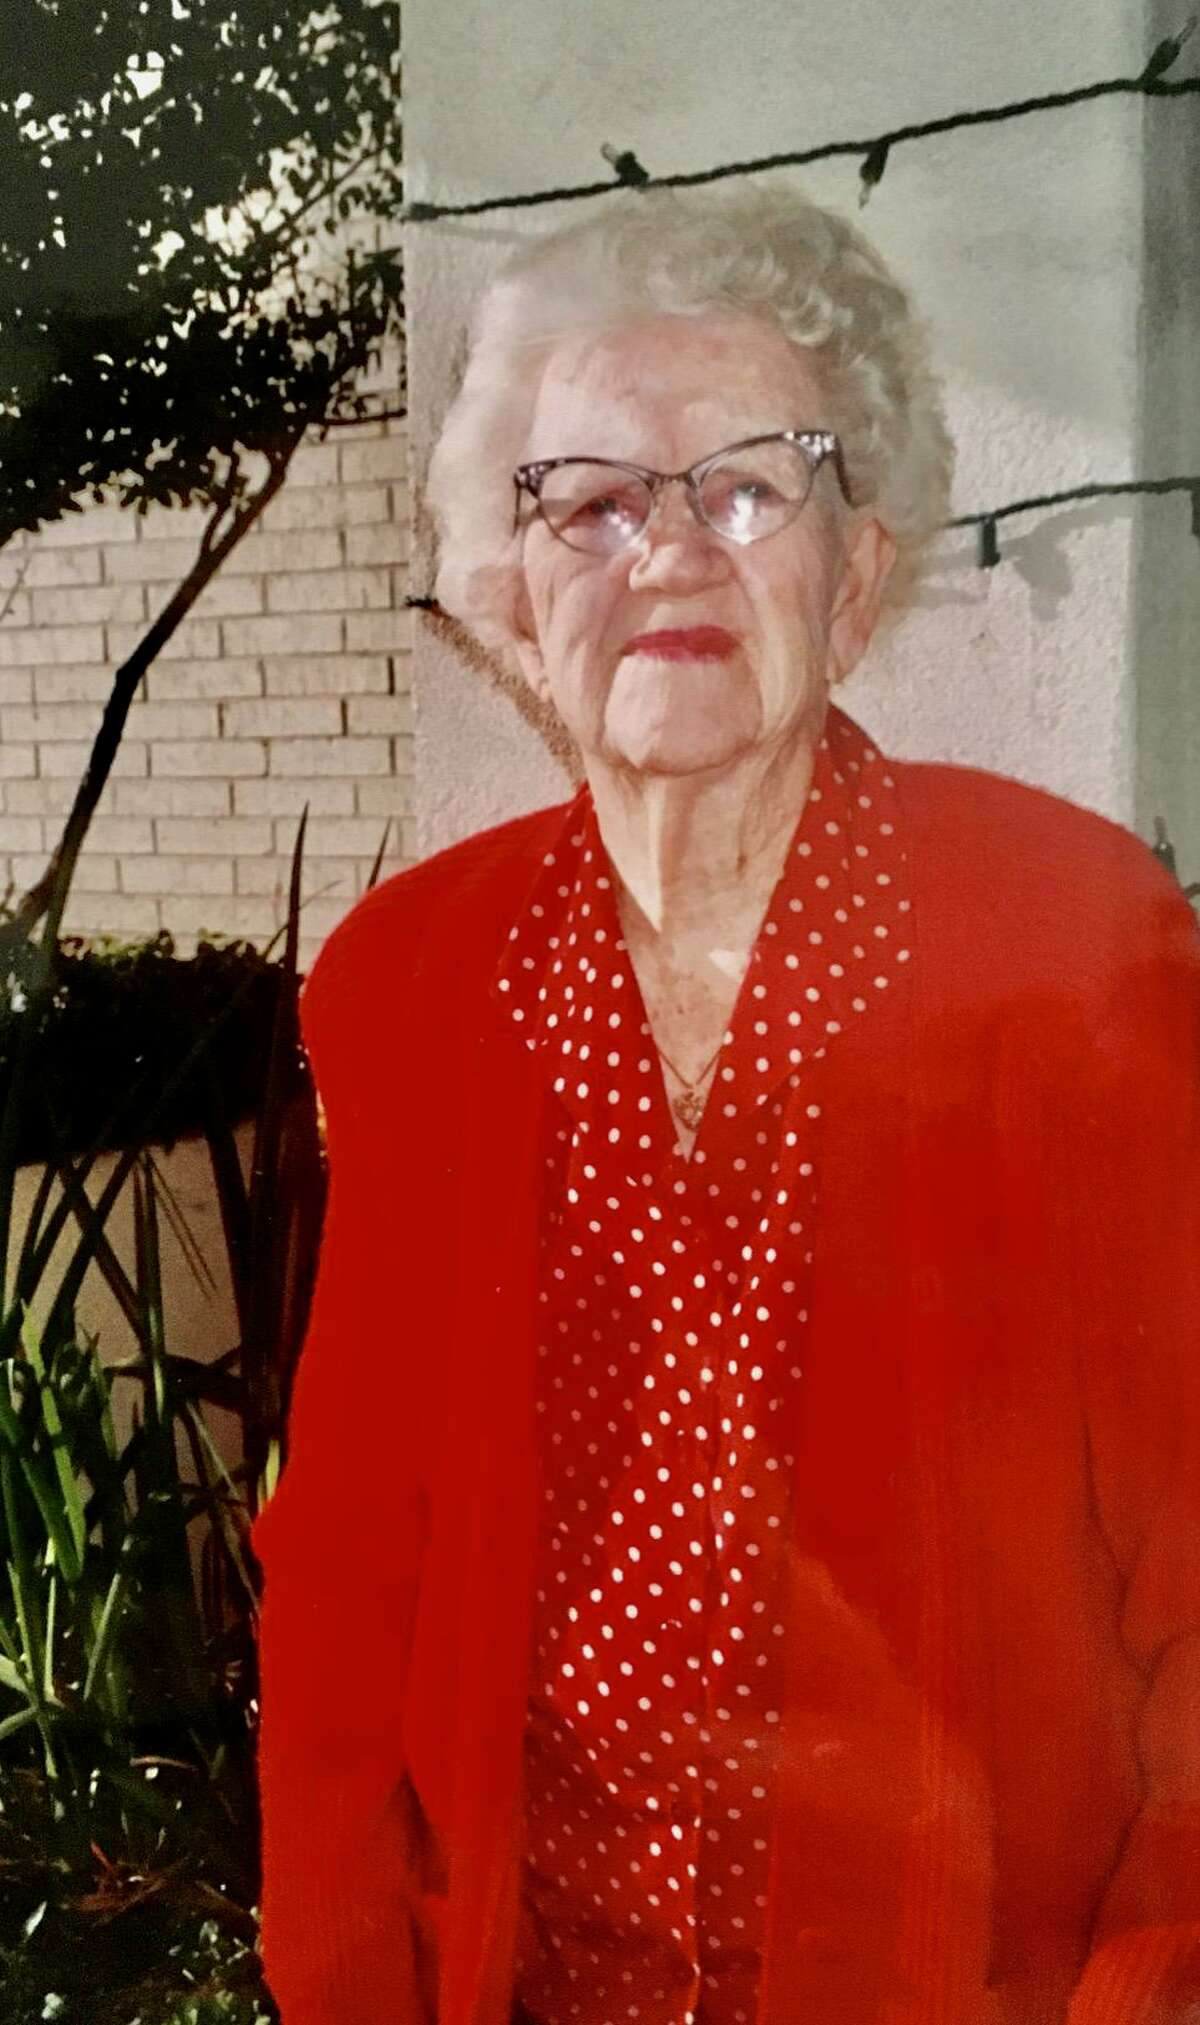 """?""""She was the only teacher who gave a darn about me,?"""" said Billy Joe Shaver, recalling English teacher Mabel Legg, who nurtured Shaver?'s writing talent."""